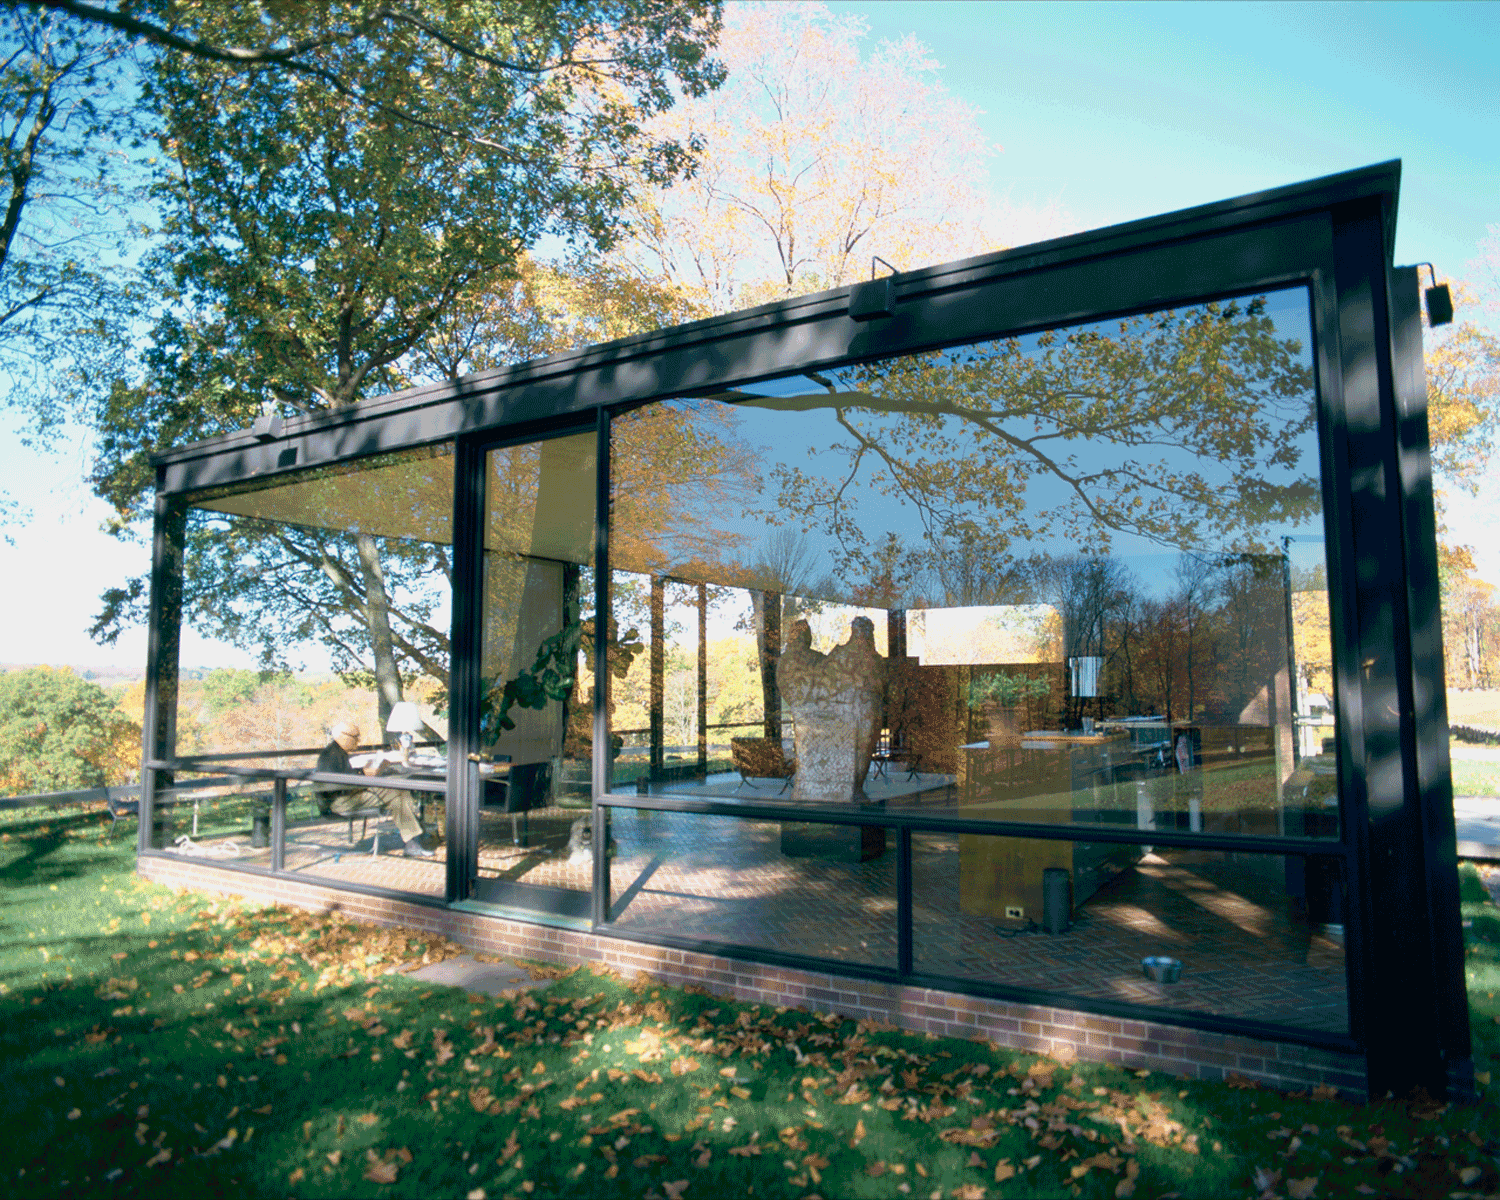 Philip Johnson in the Glass House